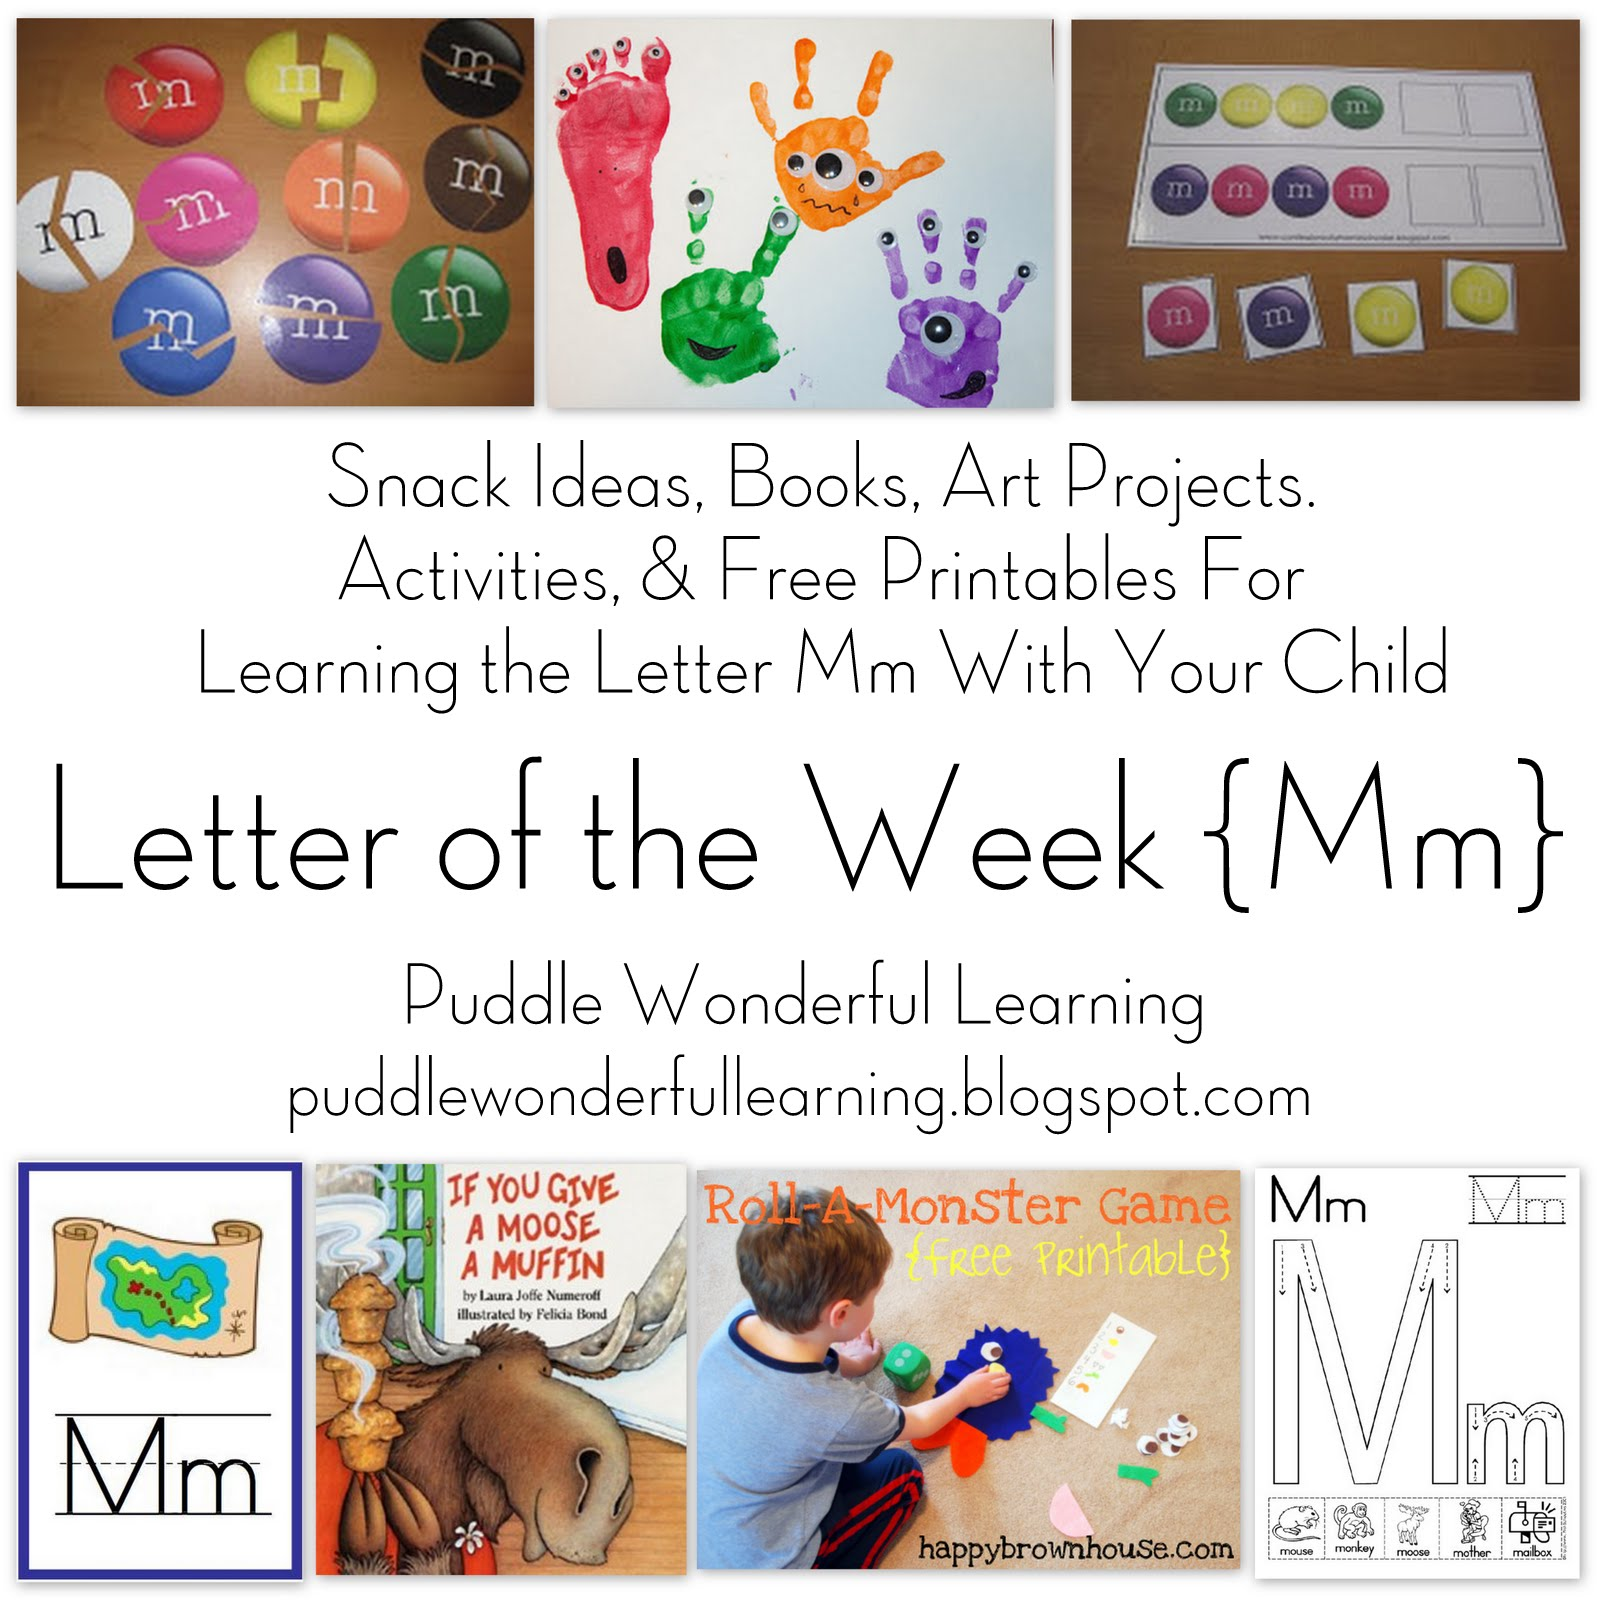 Puddle Wonderful Learning Preschool Activities Letter Of The Week Mm